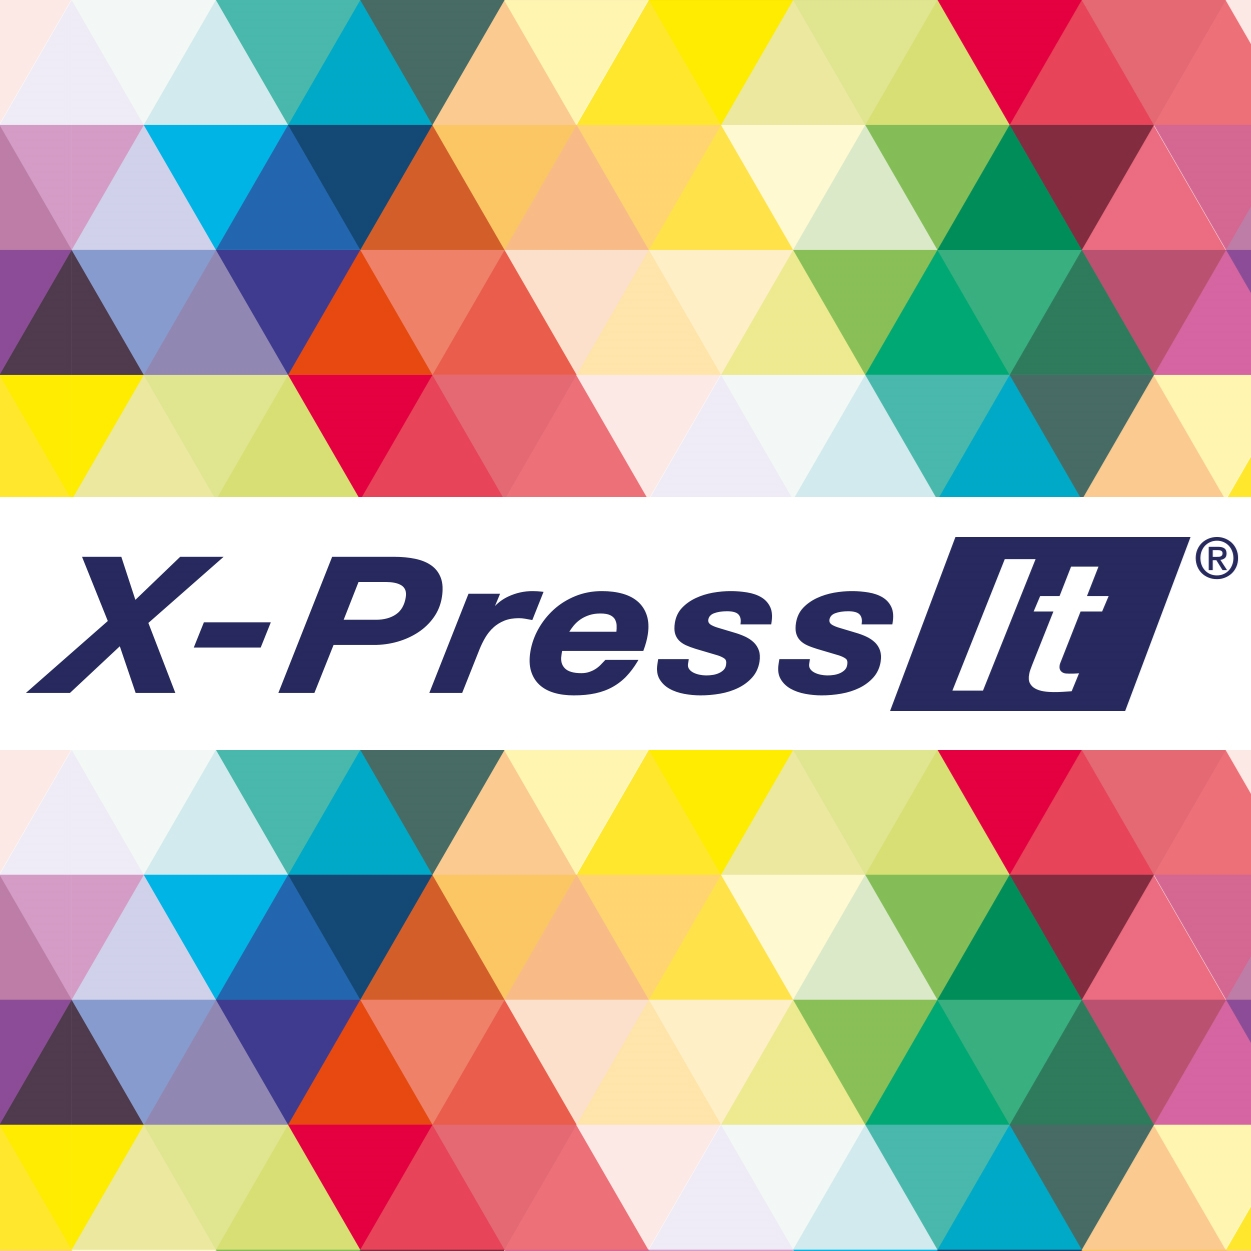 X-Press It New Look